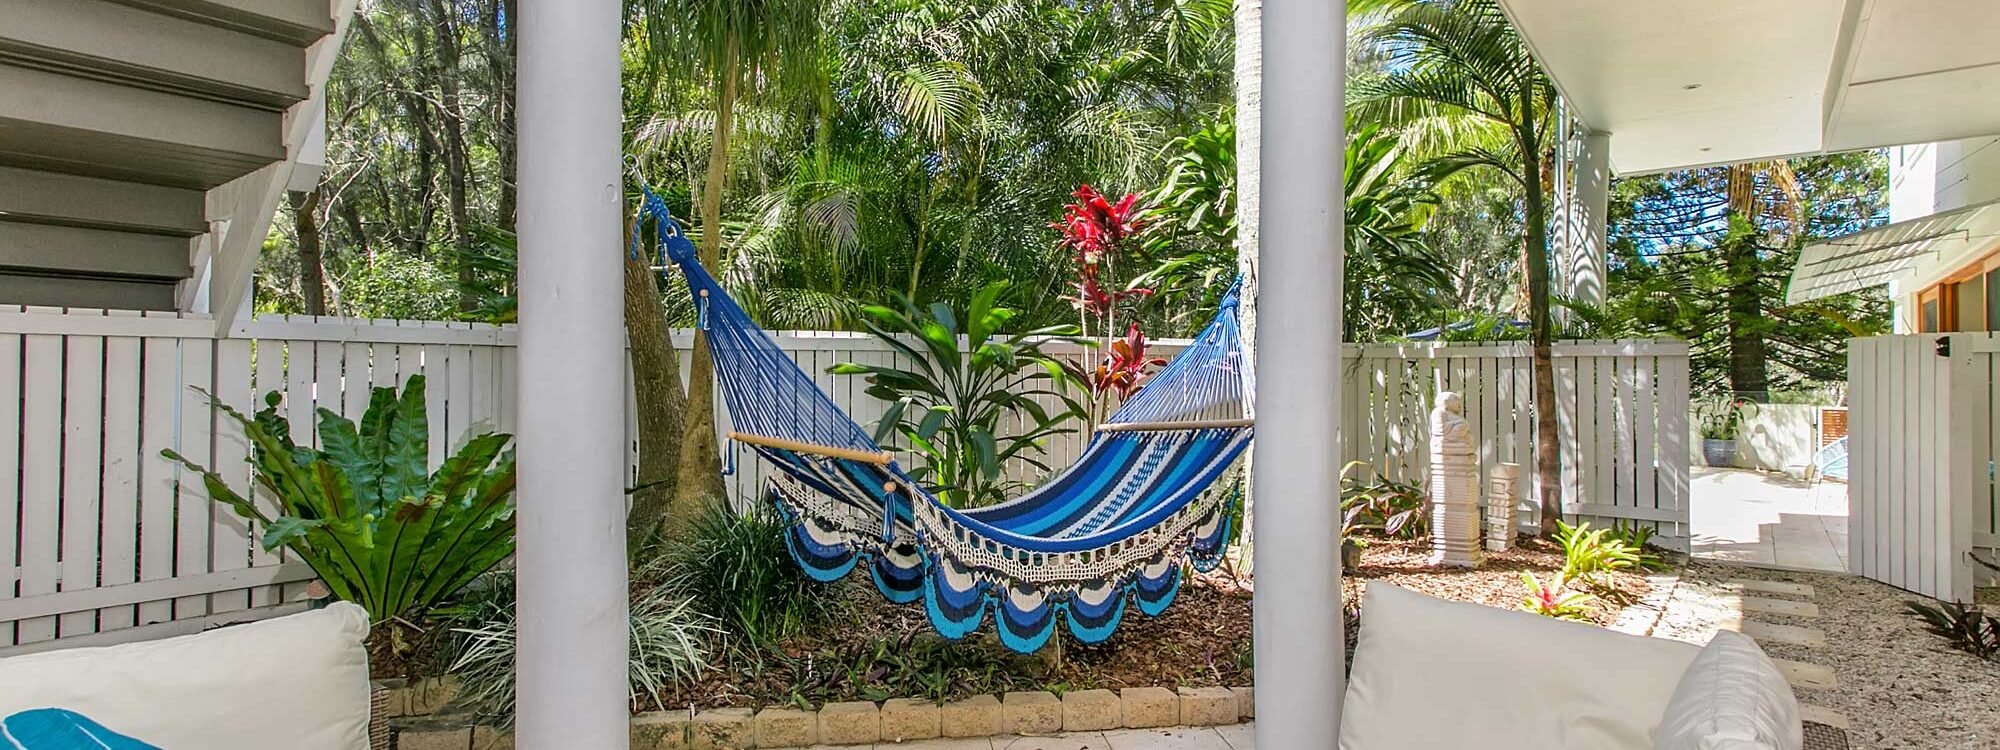 Beachcomber Blue - Byron Bay - Hammock and seating area